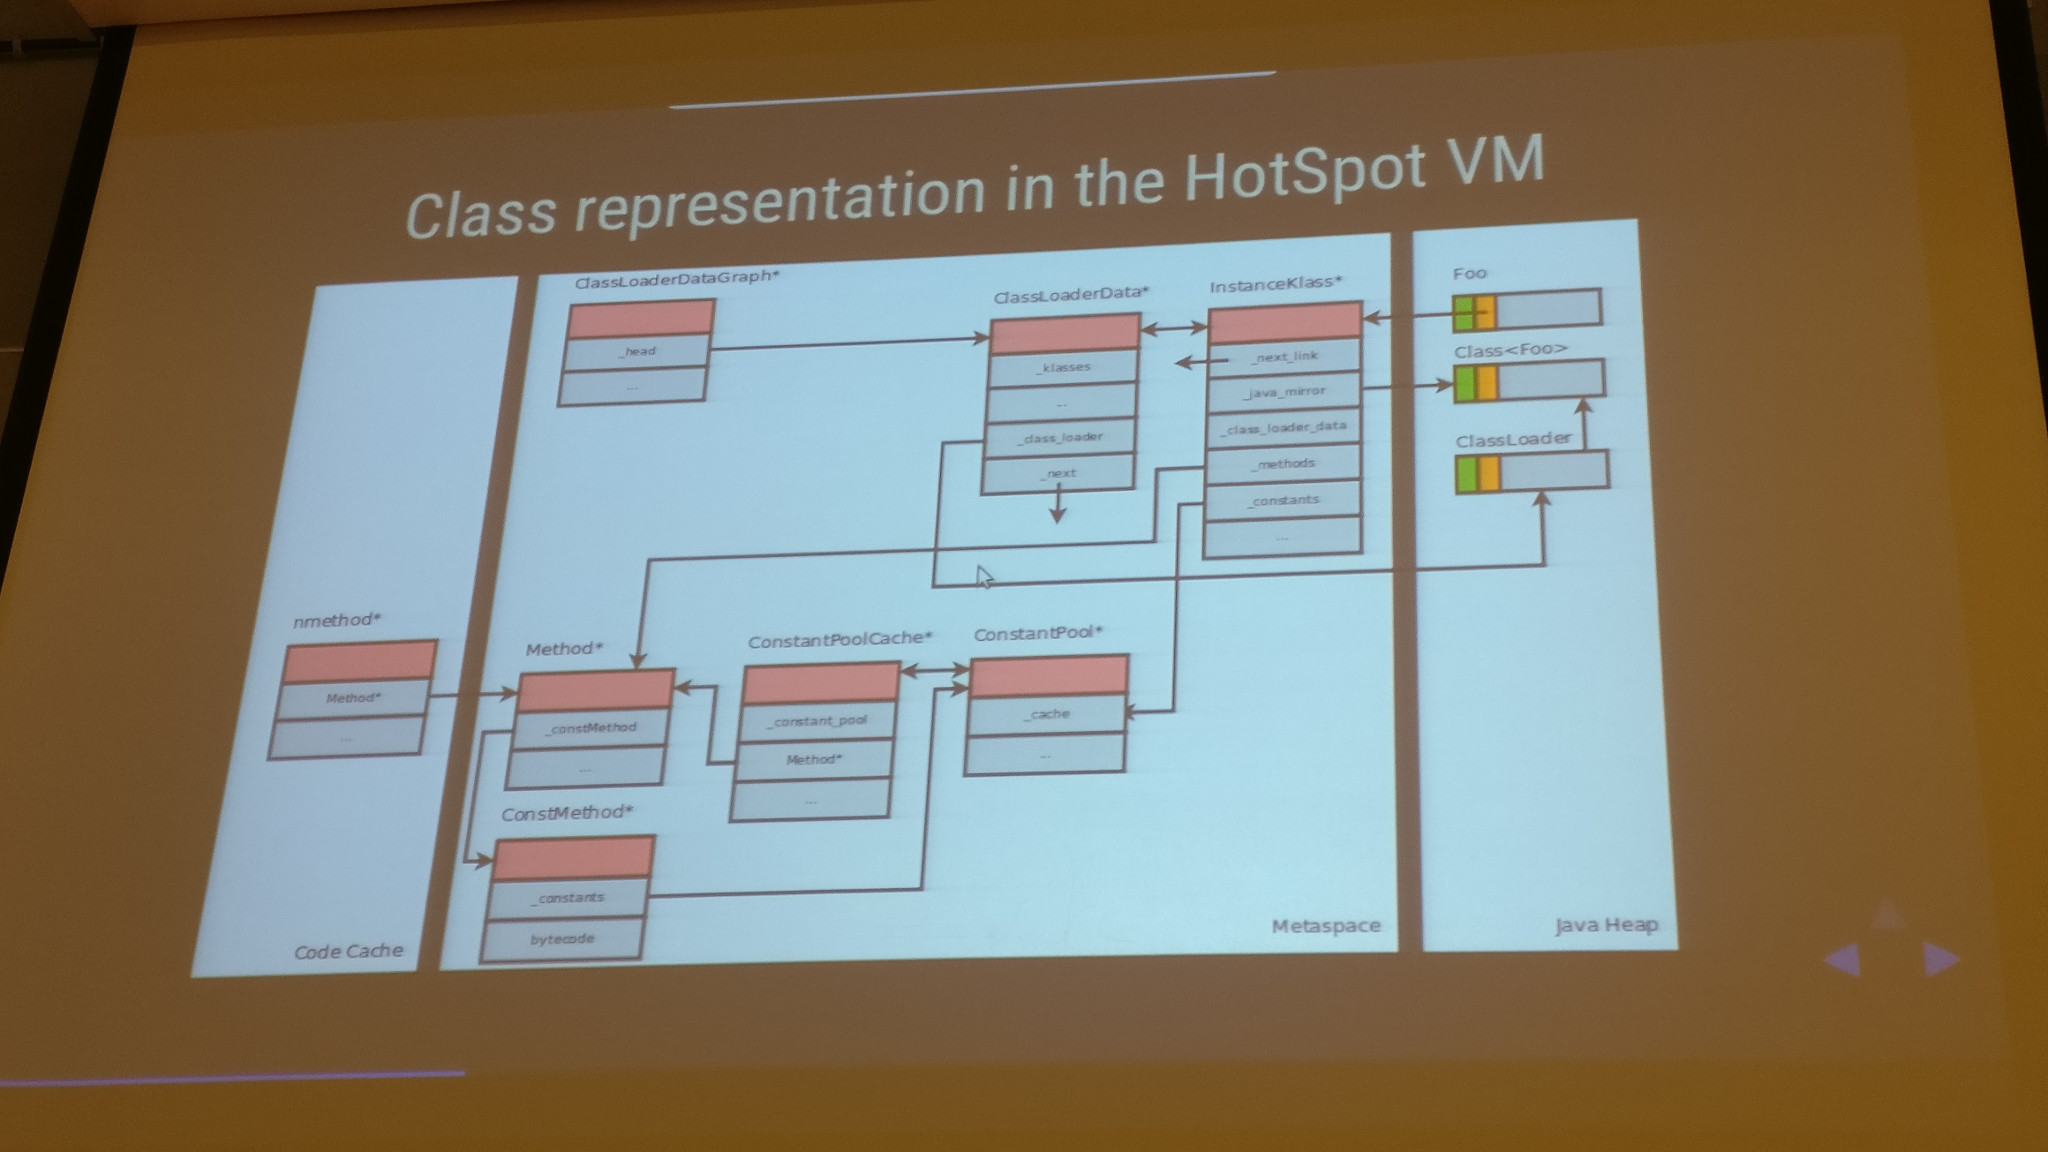 Class Representation in the HotSpot VM